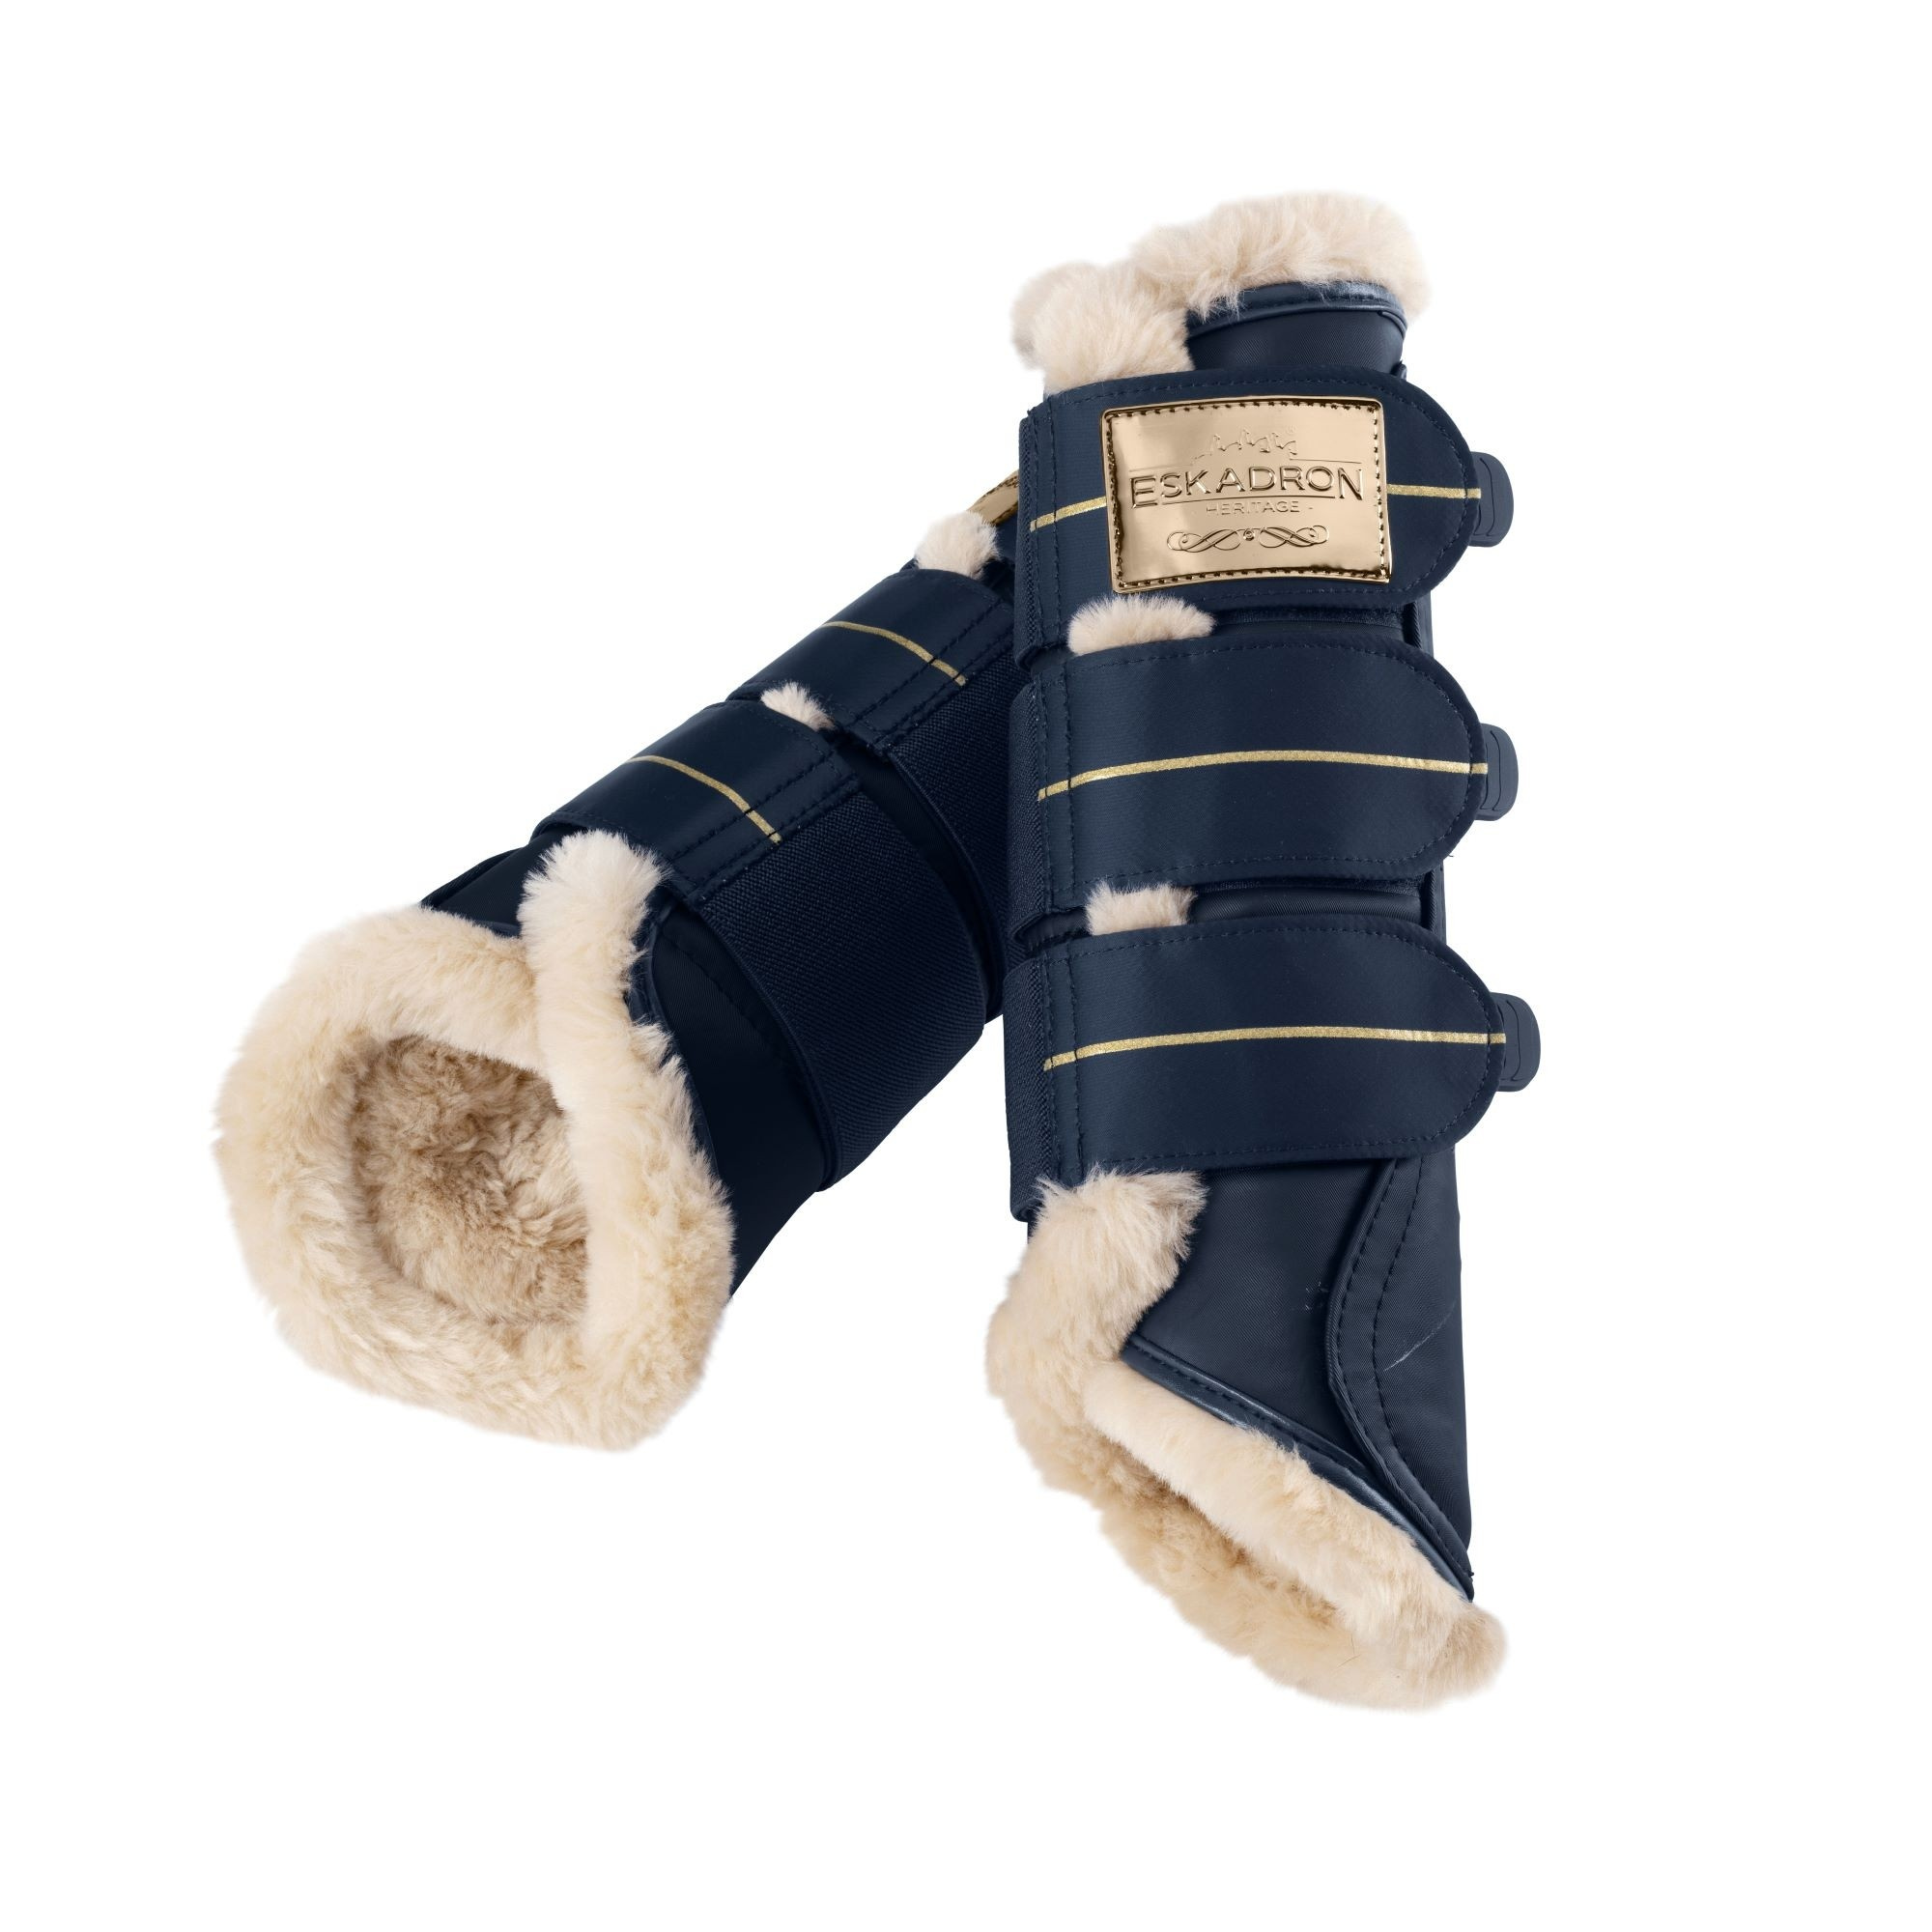 Eskadron Heritage Faux Fur Brushing Boots  - Thomas Irving's equestrian and accessories store  Eskadron Heritage Limited Edition Faux Fur Brushing Boots